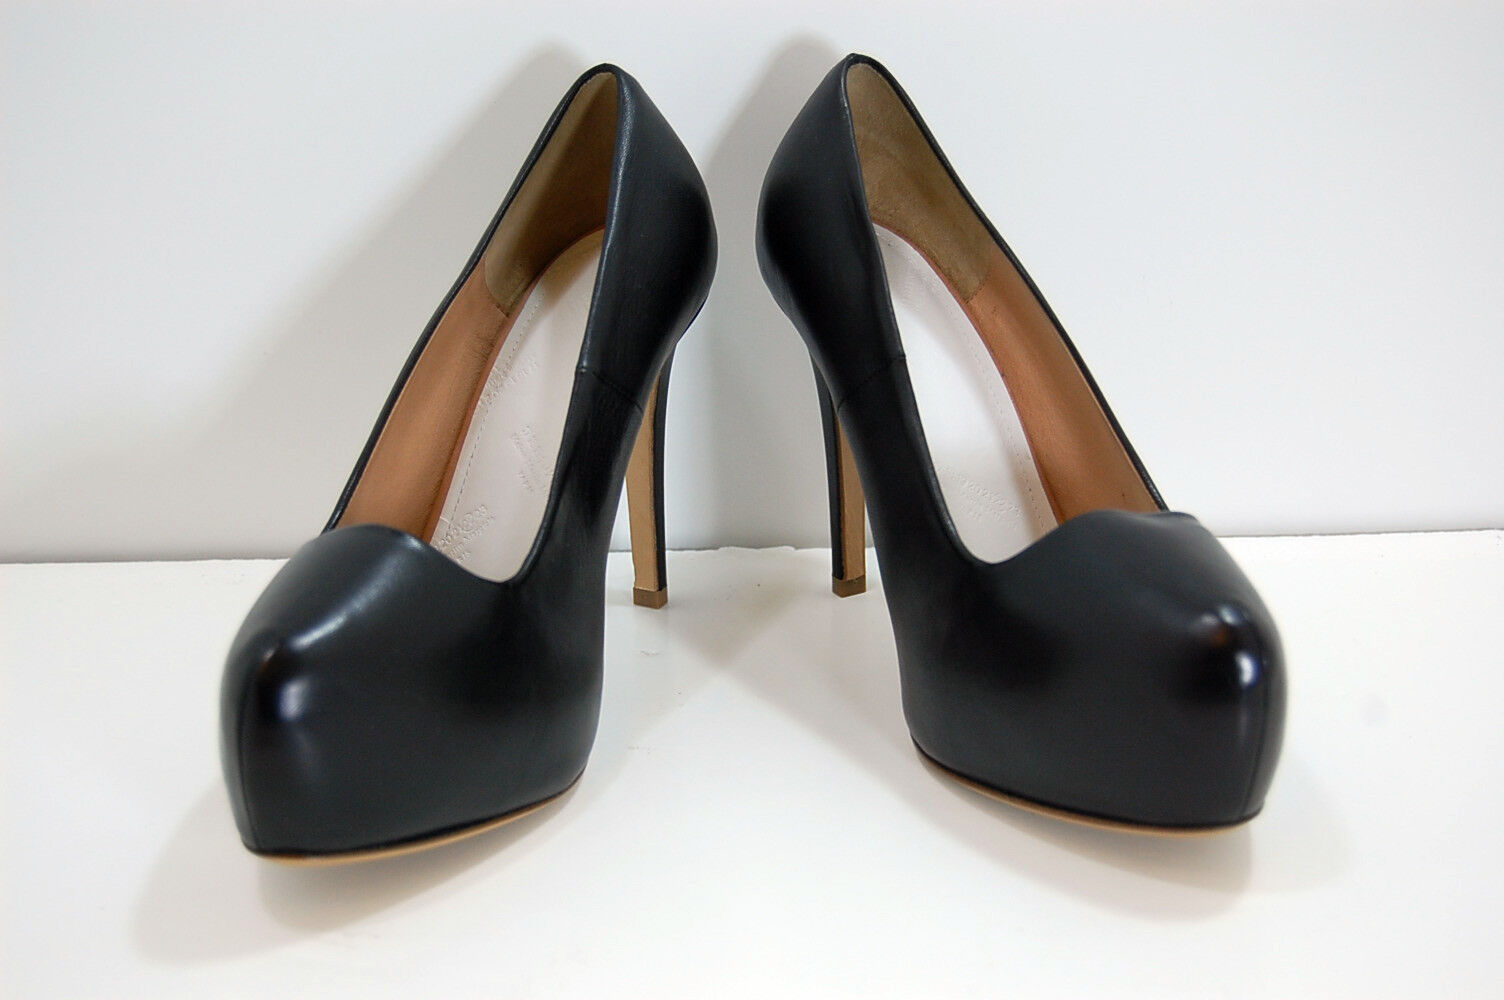 895 Maison Martin Margiela 22 WOMEN PUMPS EU 40 US 9.5-10 .MADE IN ITALY